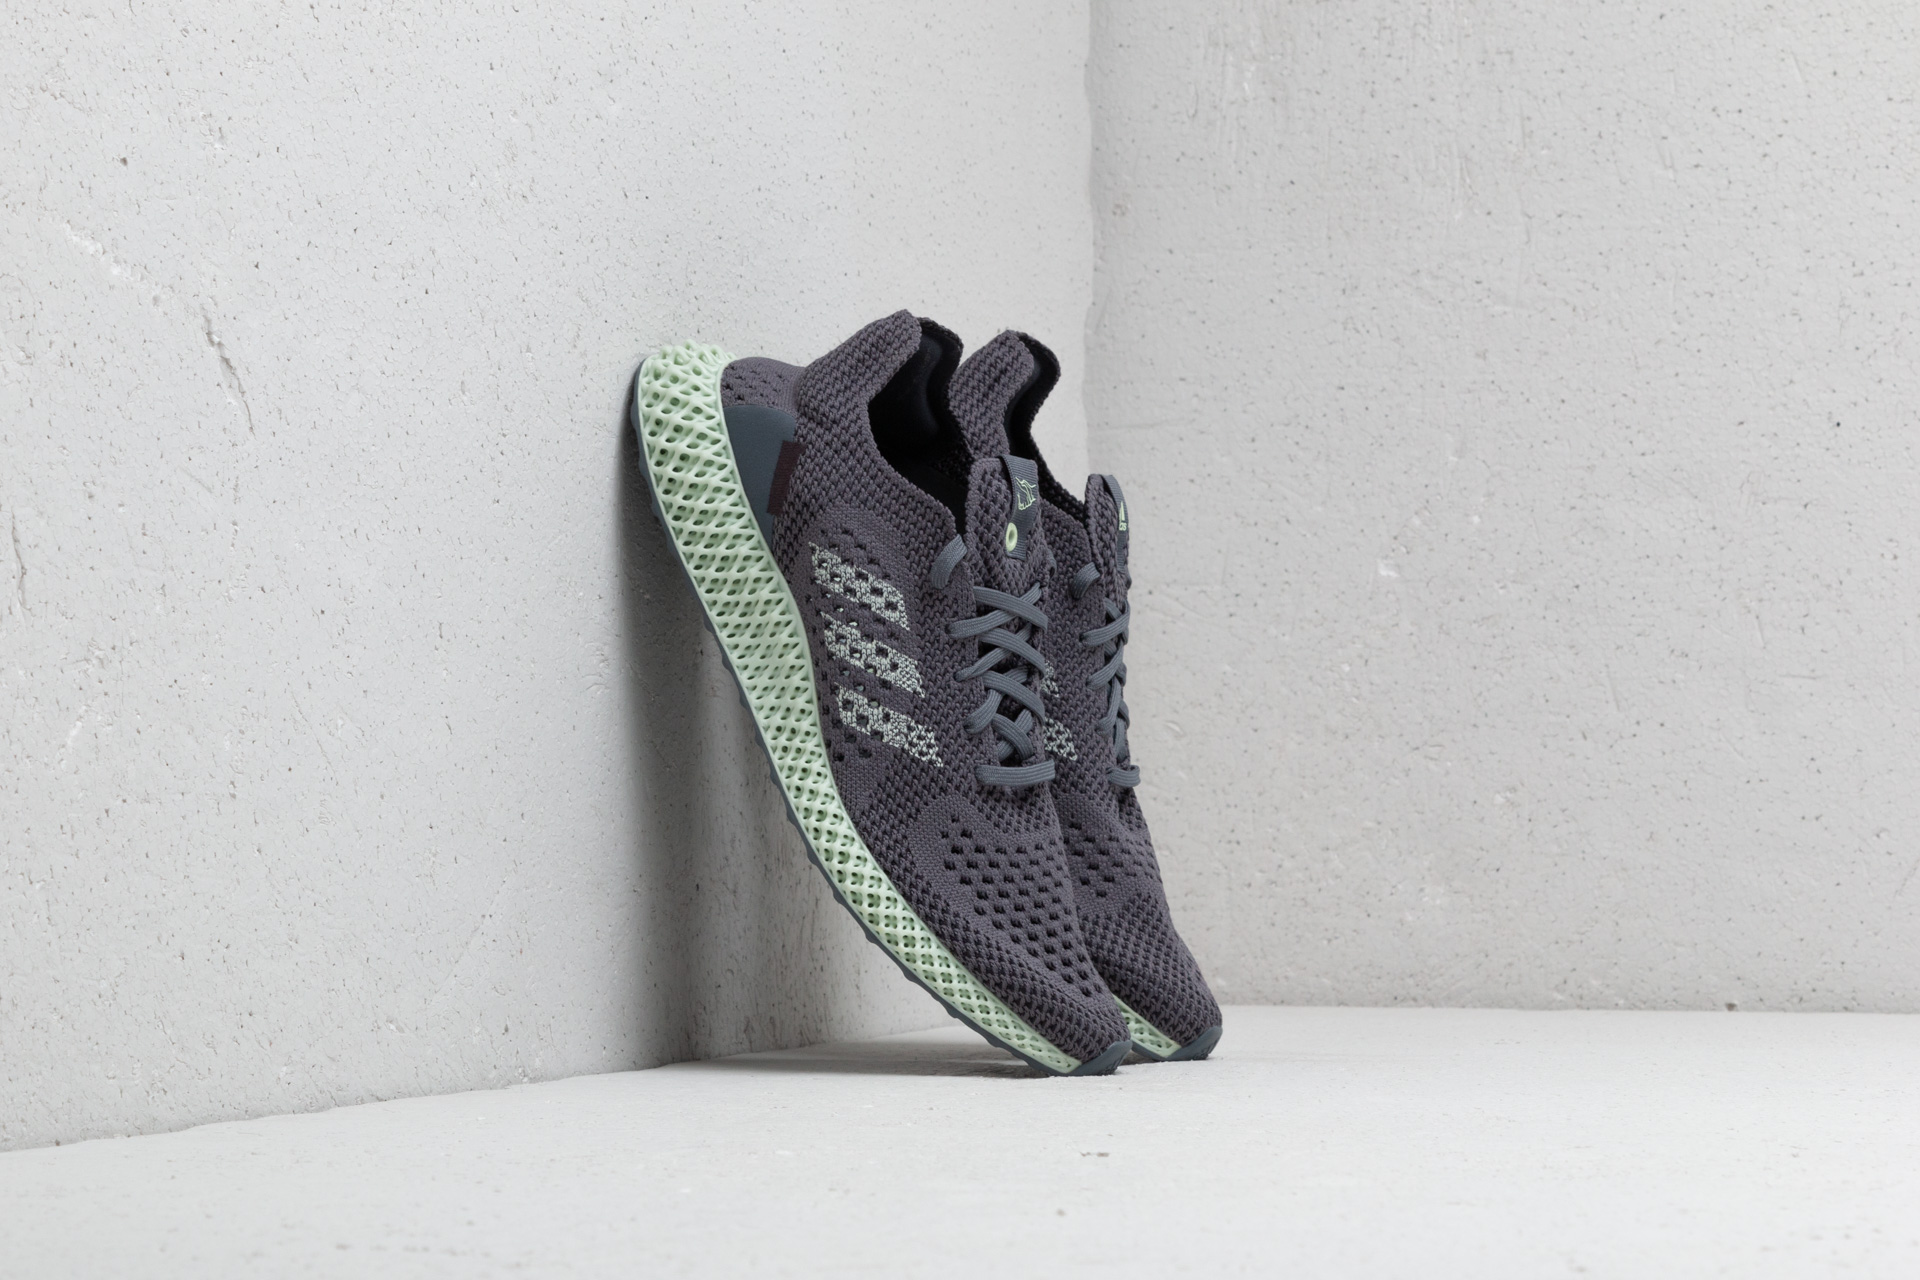 e42c425956d8 adidas futurecraft 4d consortium onyx grey release date aero green D96972  sole and shape